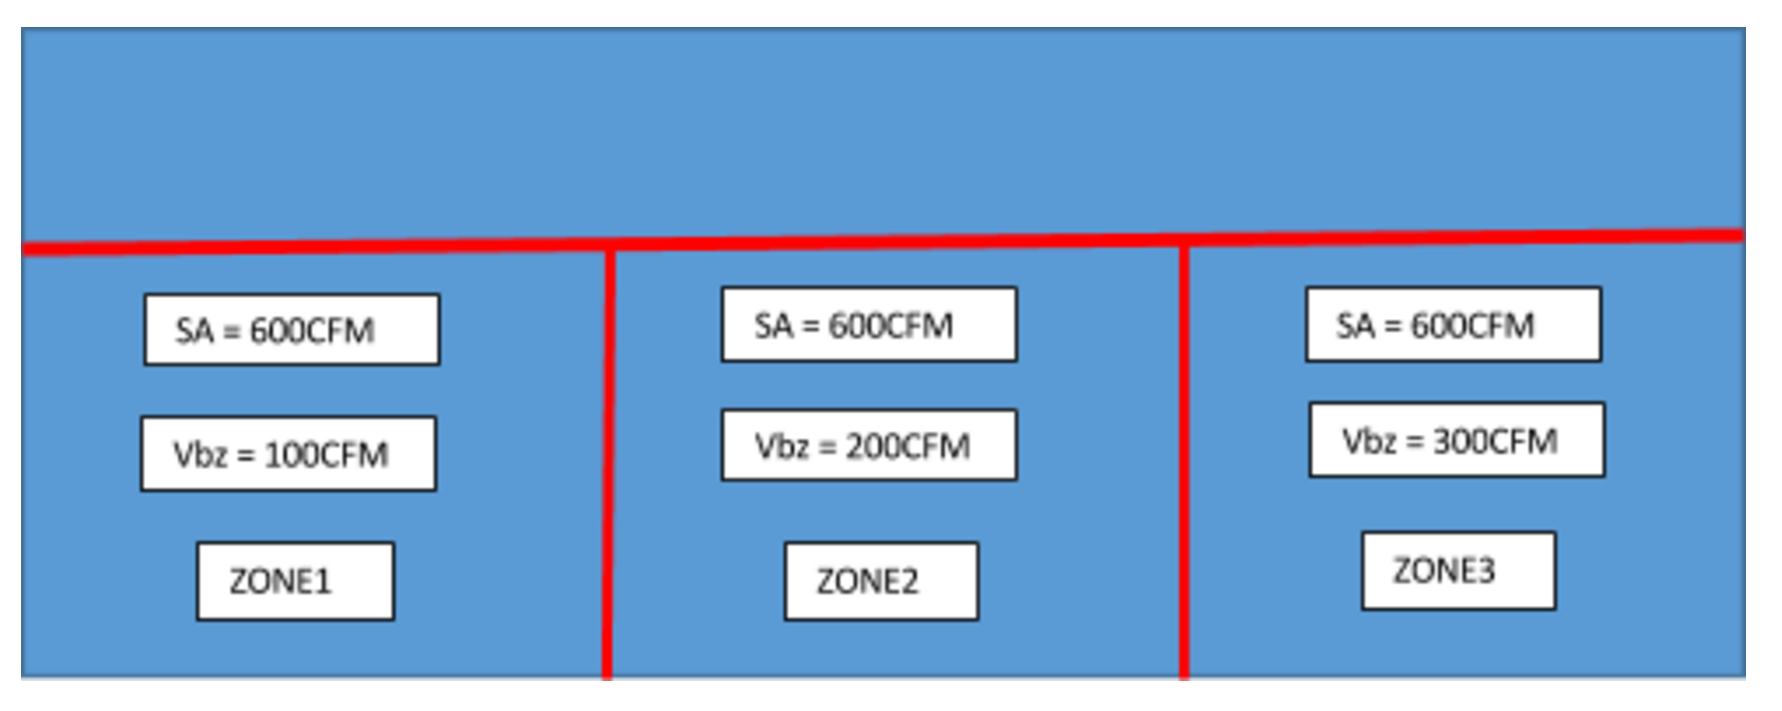 How is Outdoor CFM Calculated? - HVAC BRAIN